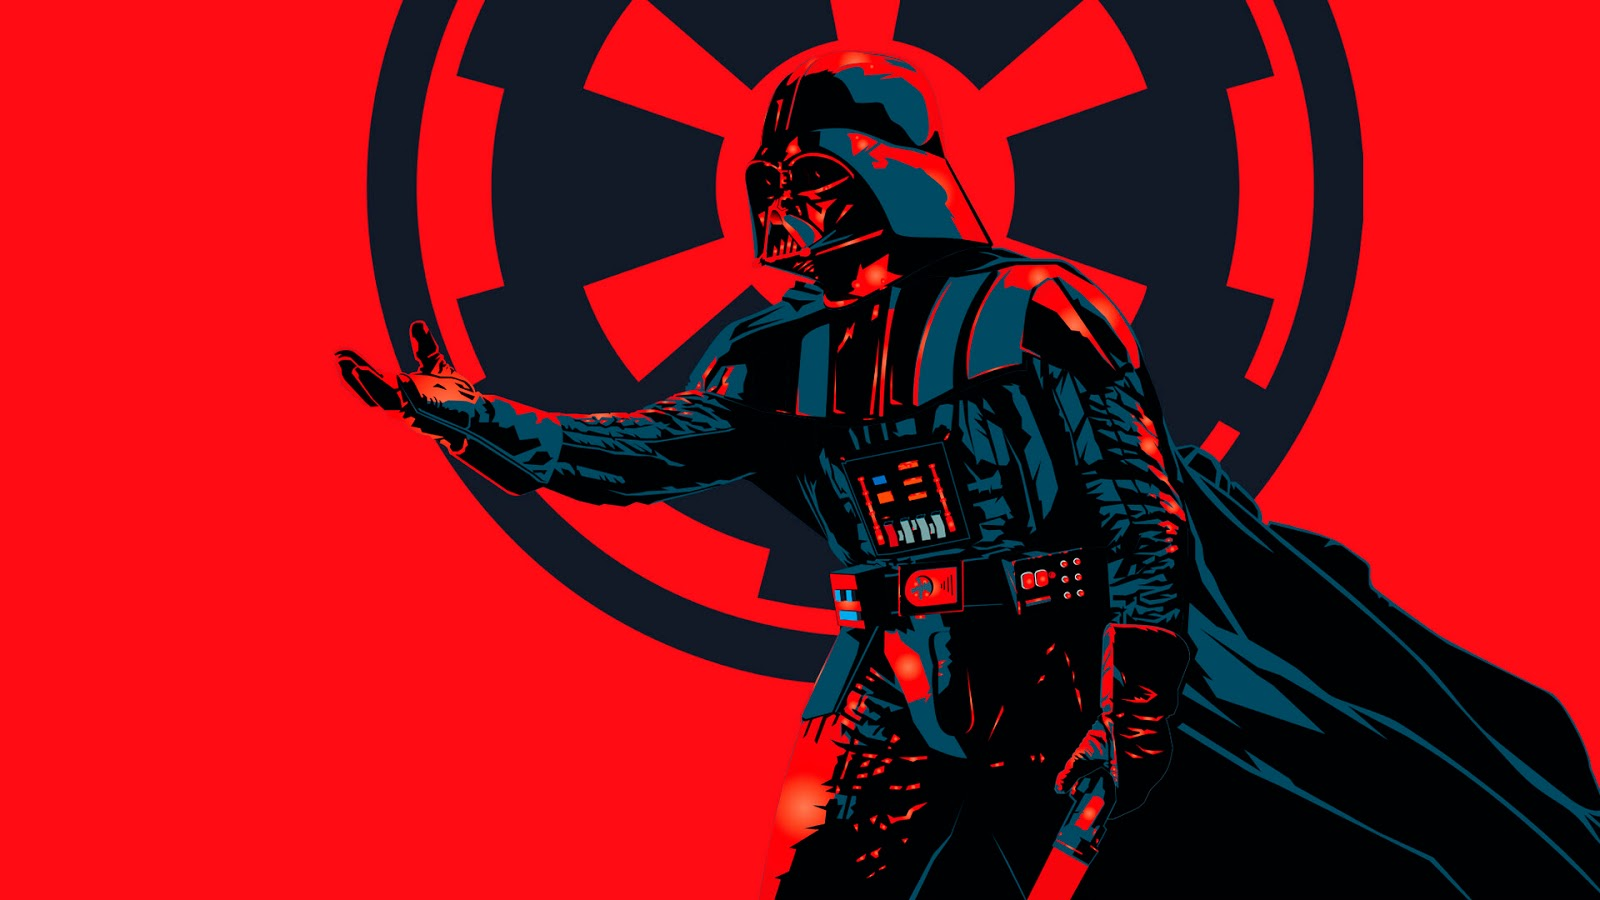 Darth Vader Wallpaper Logo Empire Star Wars 2861586 Hd Wallpaper Backgrounds Download